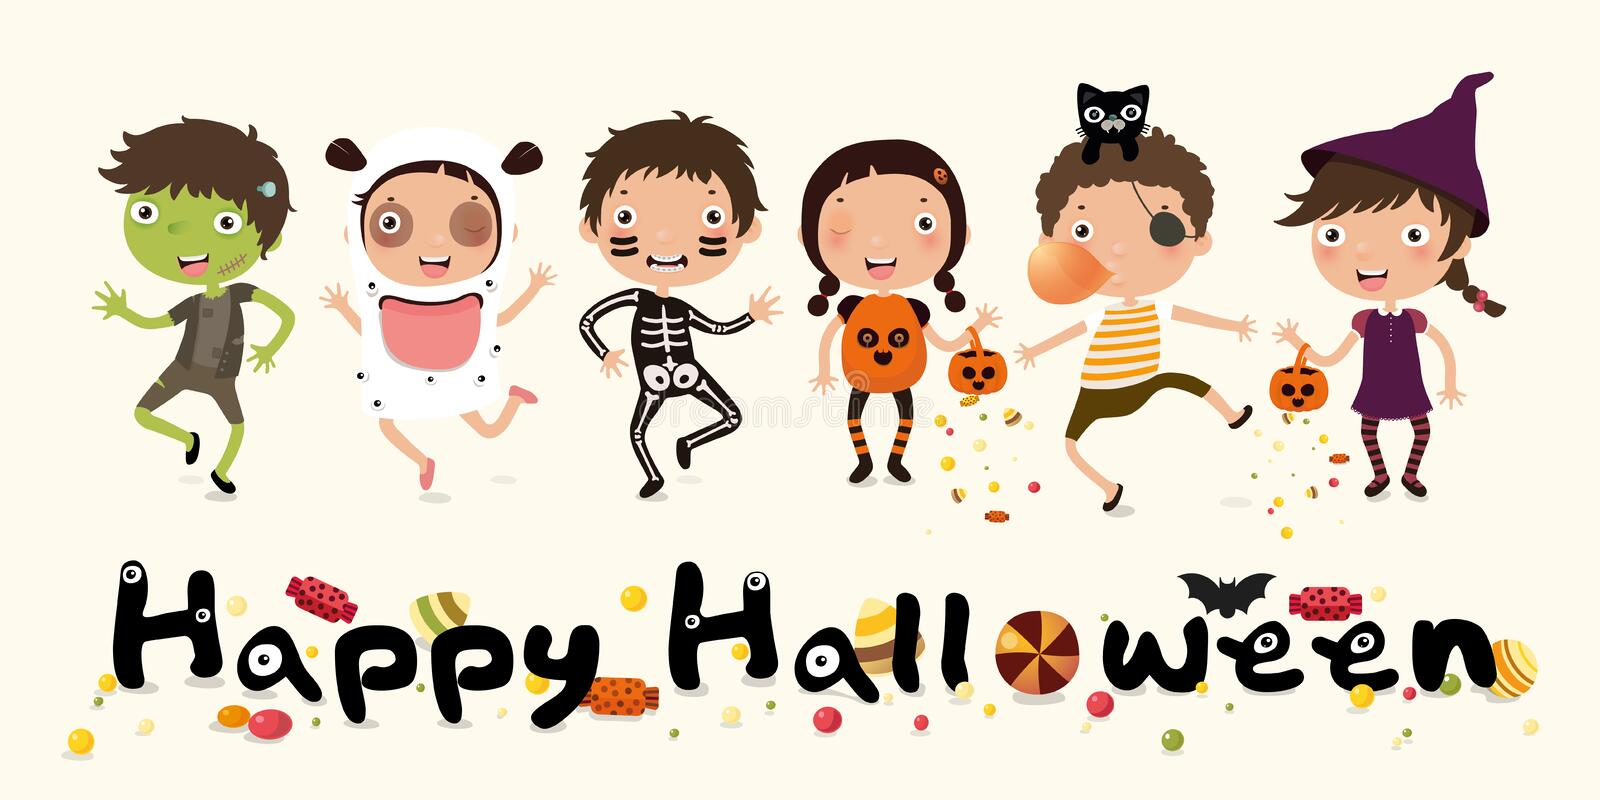 Happy Halloween, truck or treat,  Set of cute cartoon children in colorful Halloween costumes: Ghost, pumpkin, pirate, devil, witc vector illustration